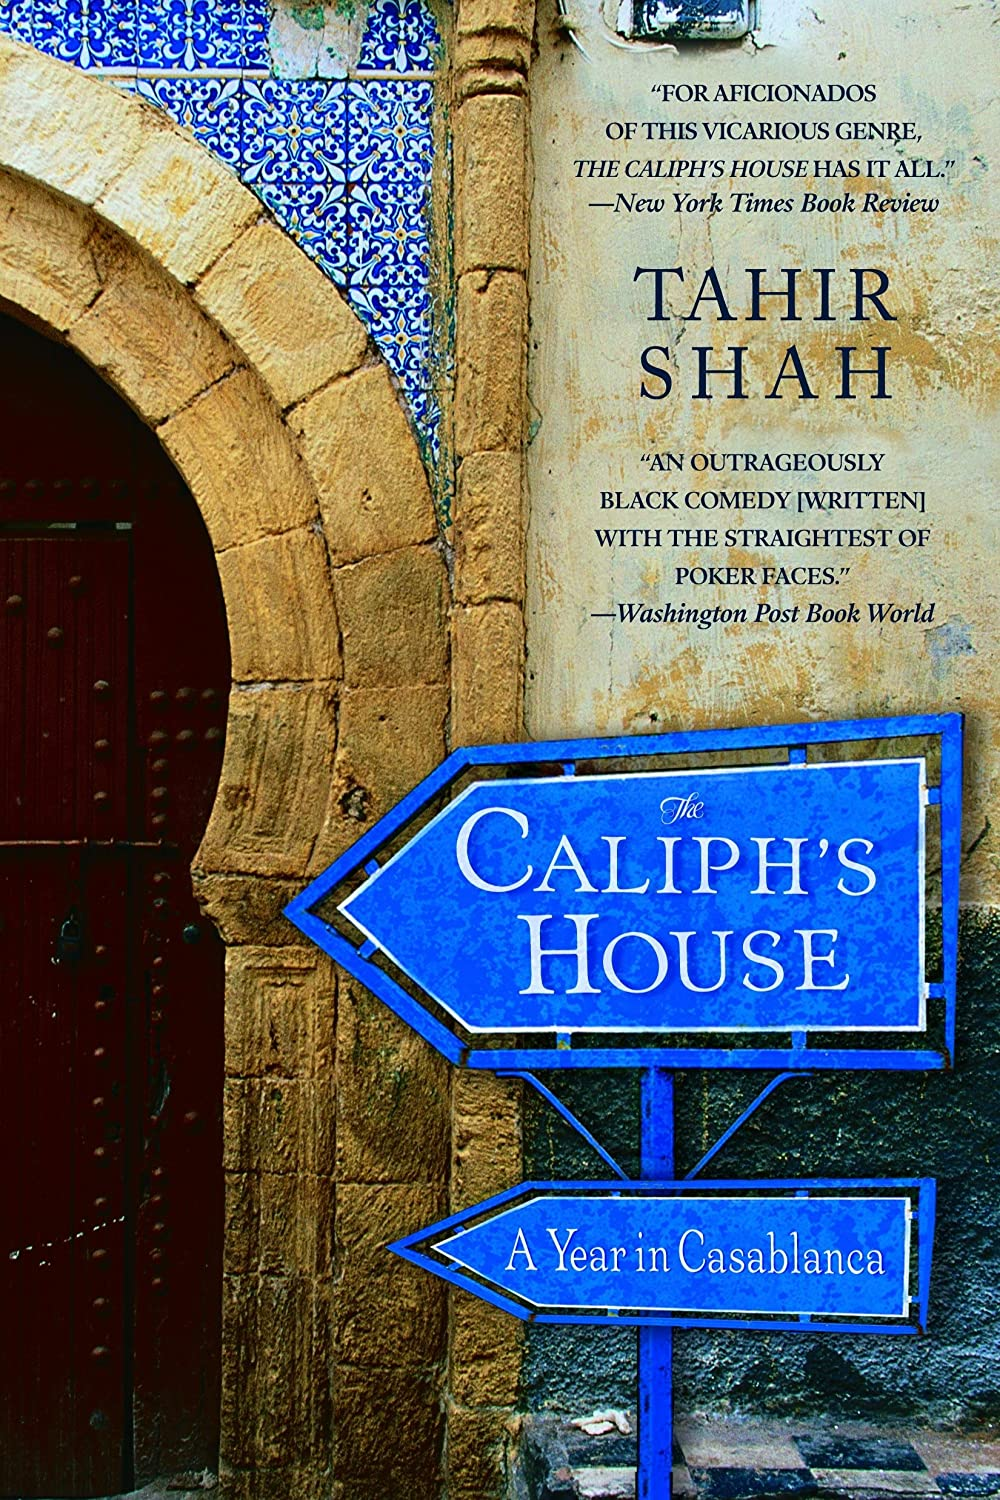 The Caliph's House